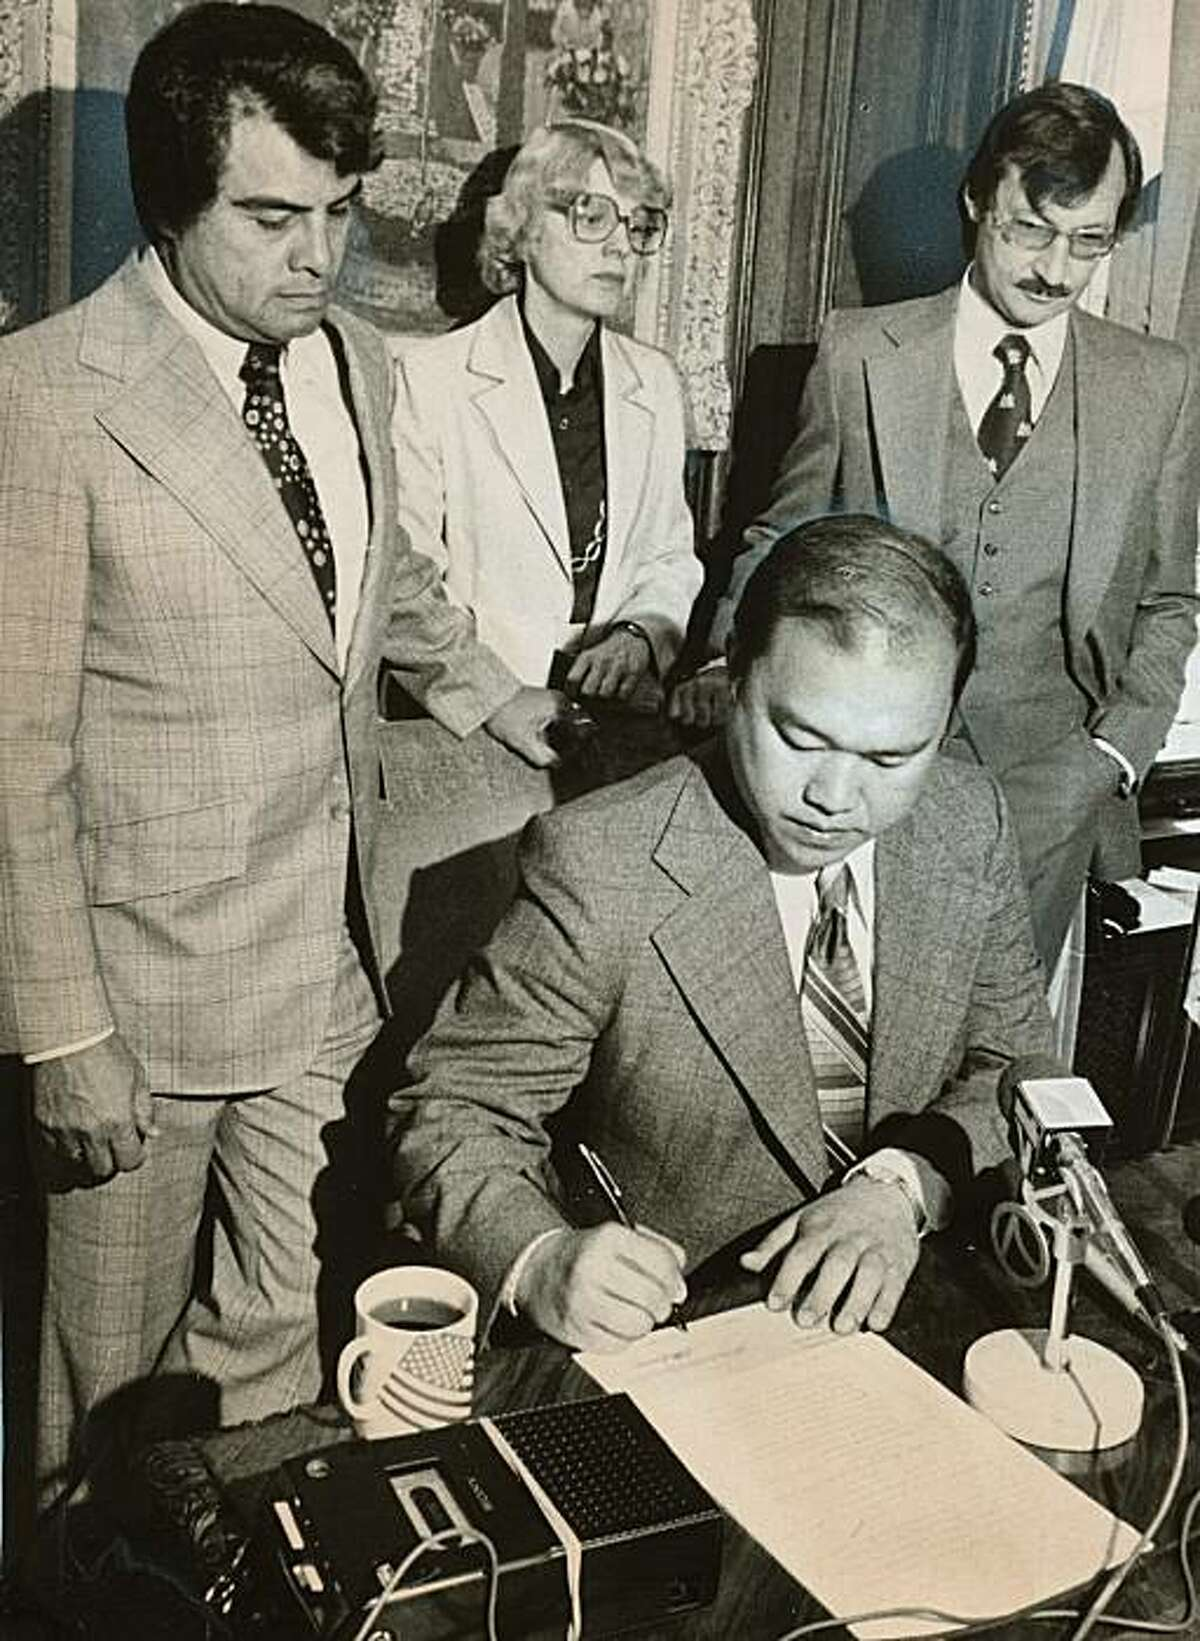 San Francisco Supervisor Gordon Lau, seated, signing the Rent Control Law, with Supervisors Bob Gonzales, left, Louise Renne, and Don Horanzy, in June 1979. Clem Albers/San Francisco Chronicle